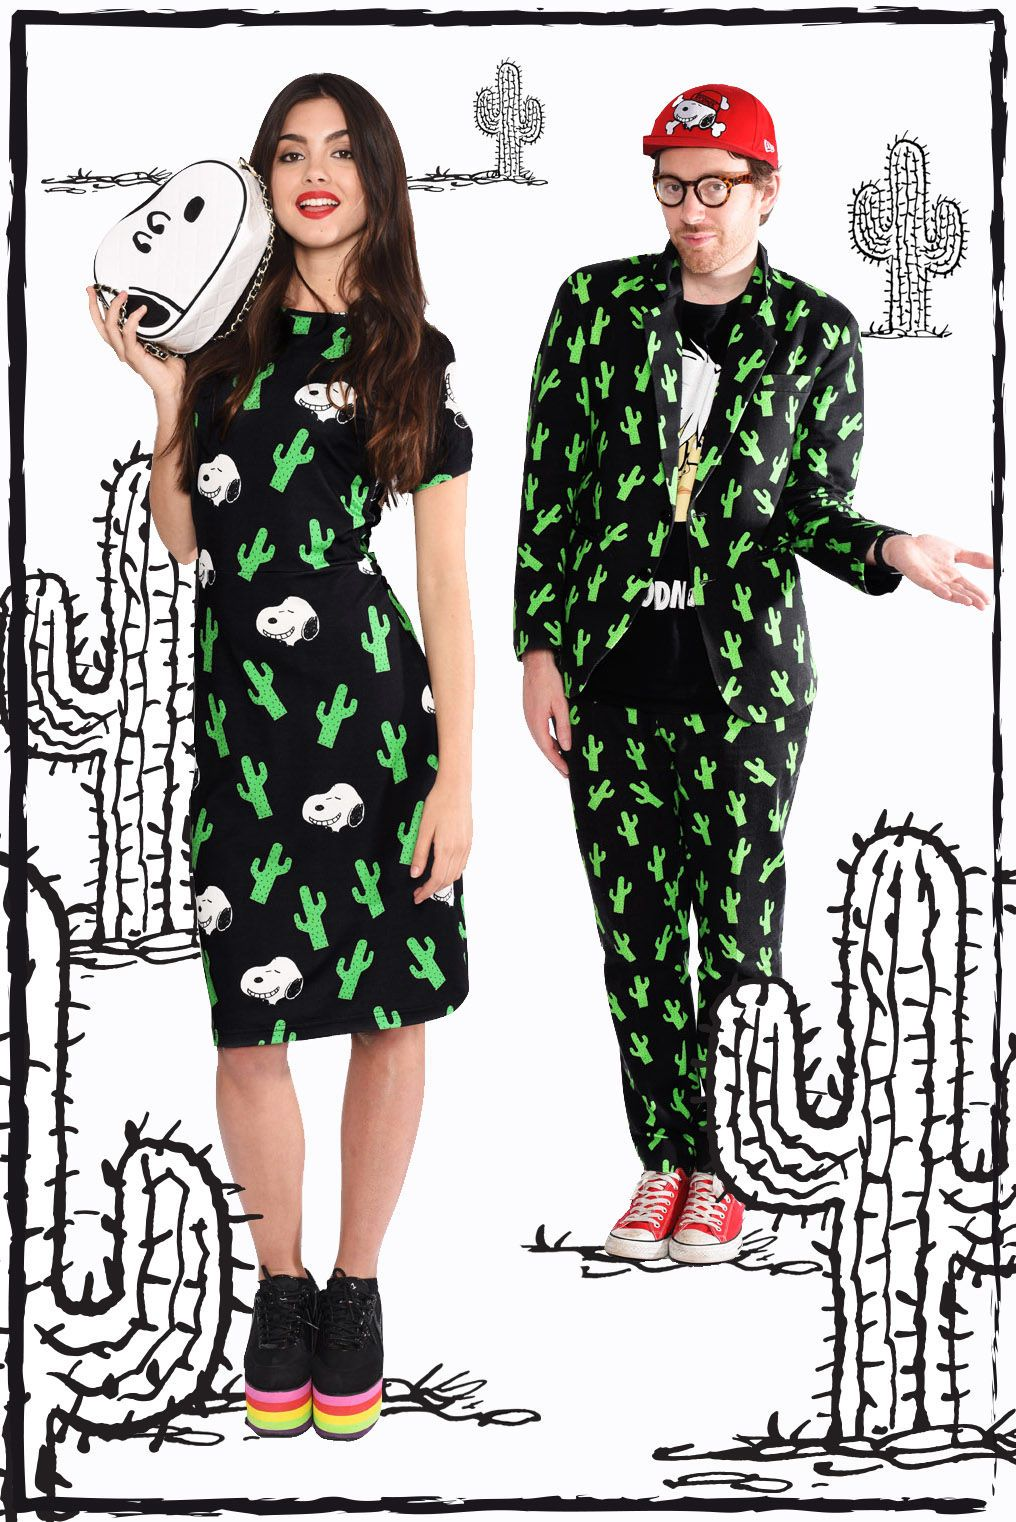 Don't worry—you and your person can wear matching outfits, because why not?